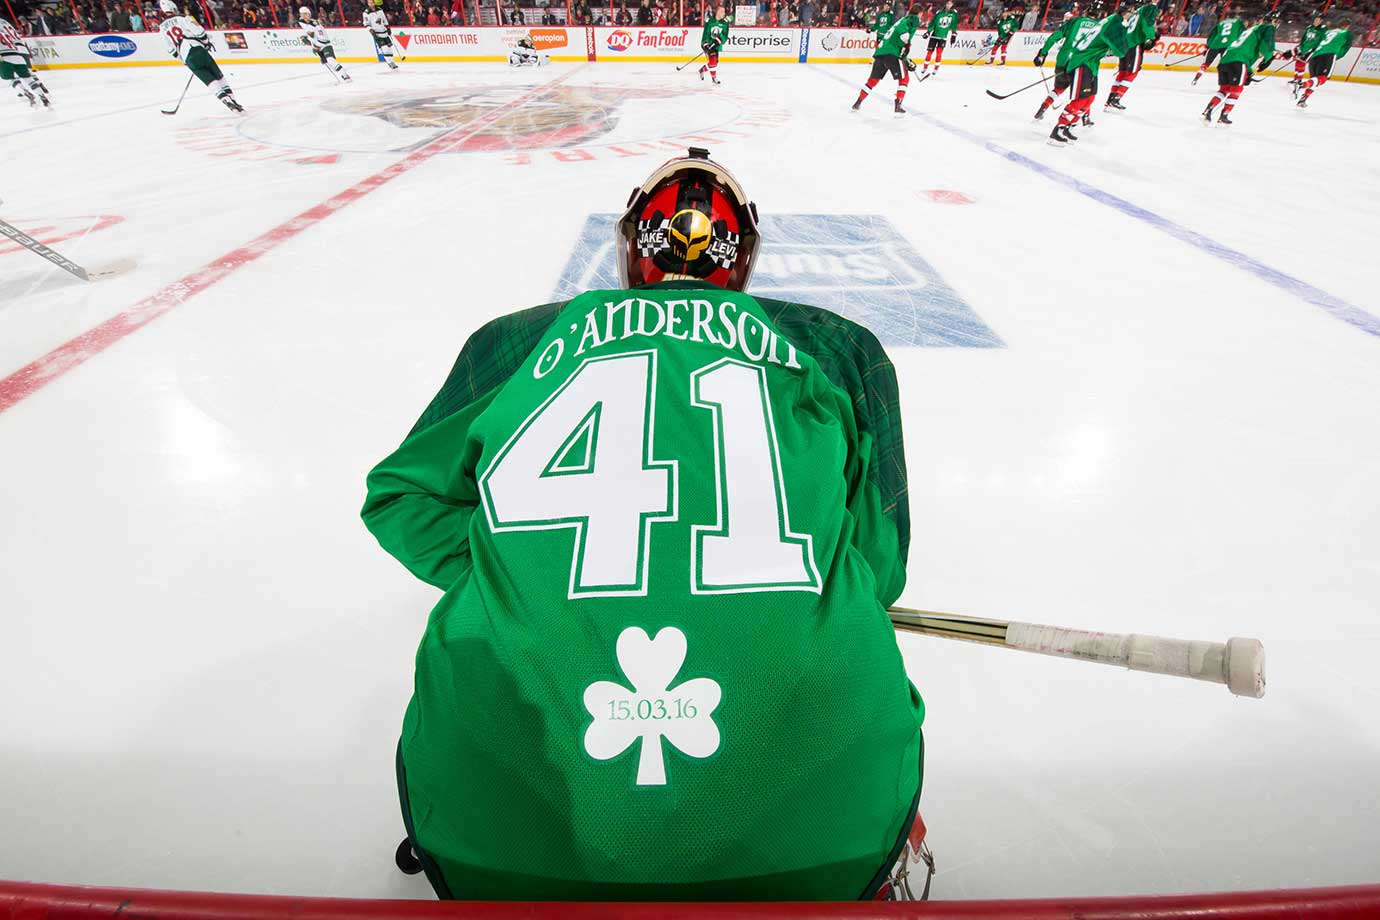 Craig Anderson of Ottawa wears a green St. Patrick's Day warm up jersey prior to a game against Minnesota.